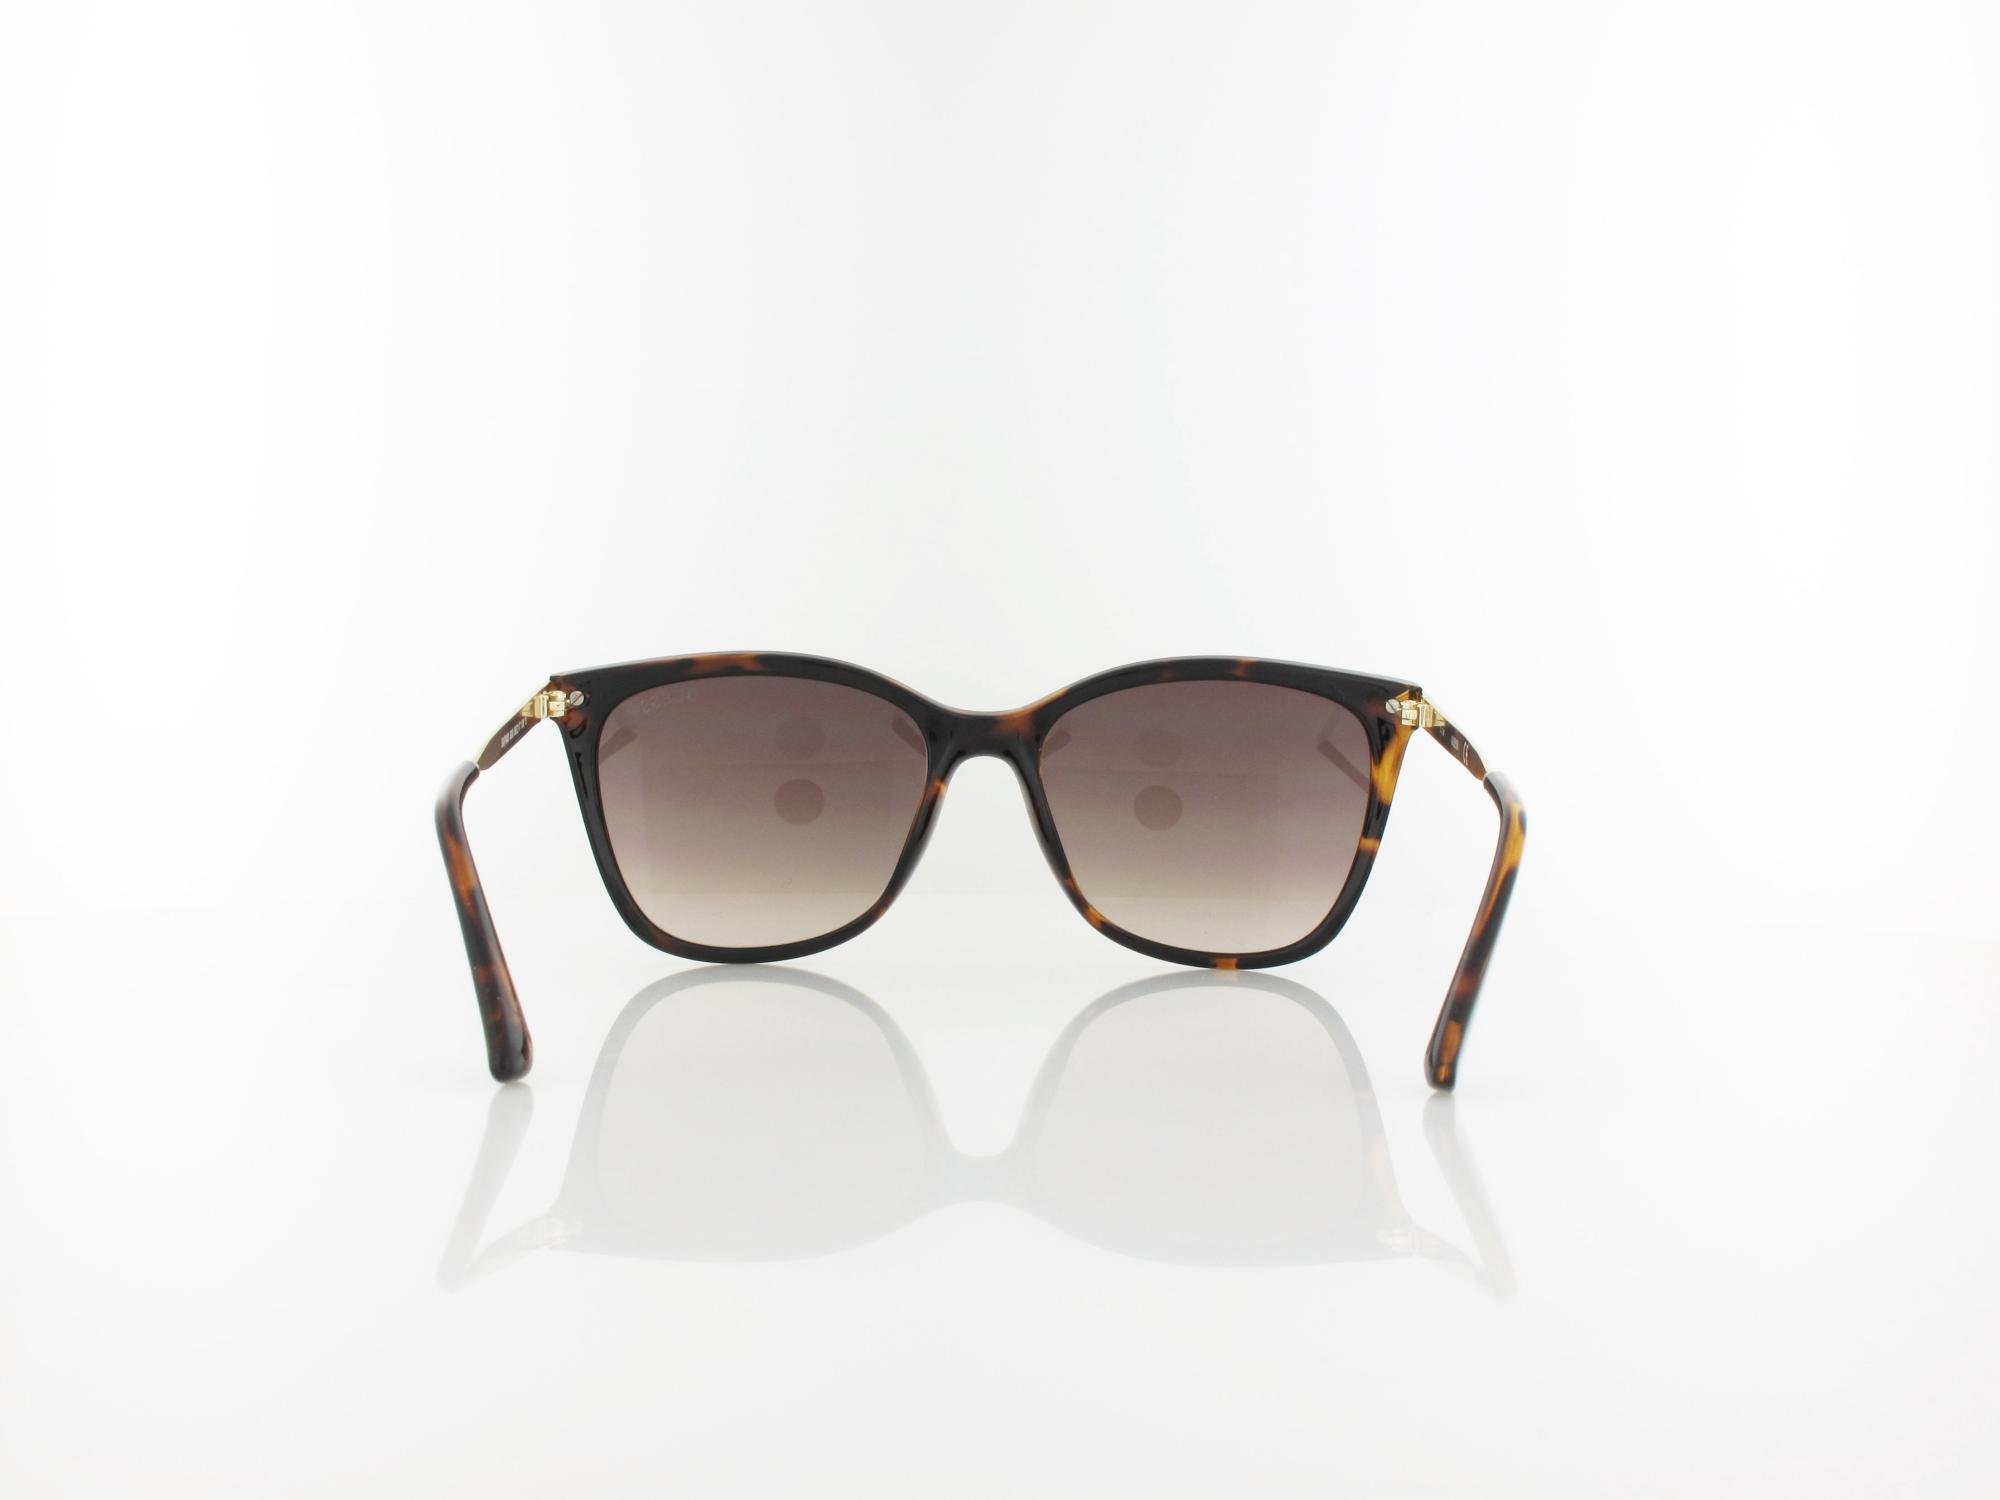 Guess | GU7483/S 52G 56 | dark havana gold / brown